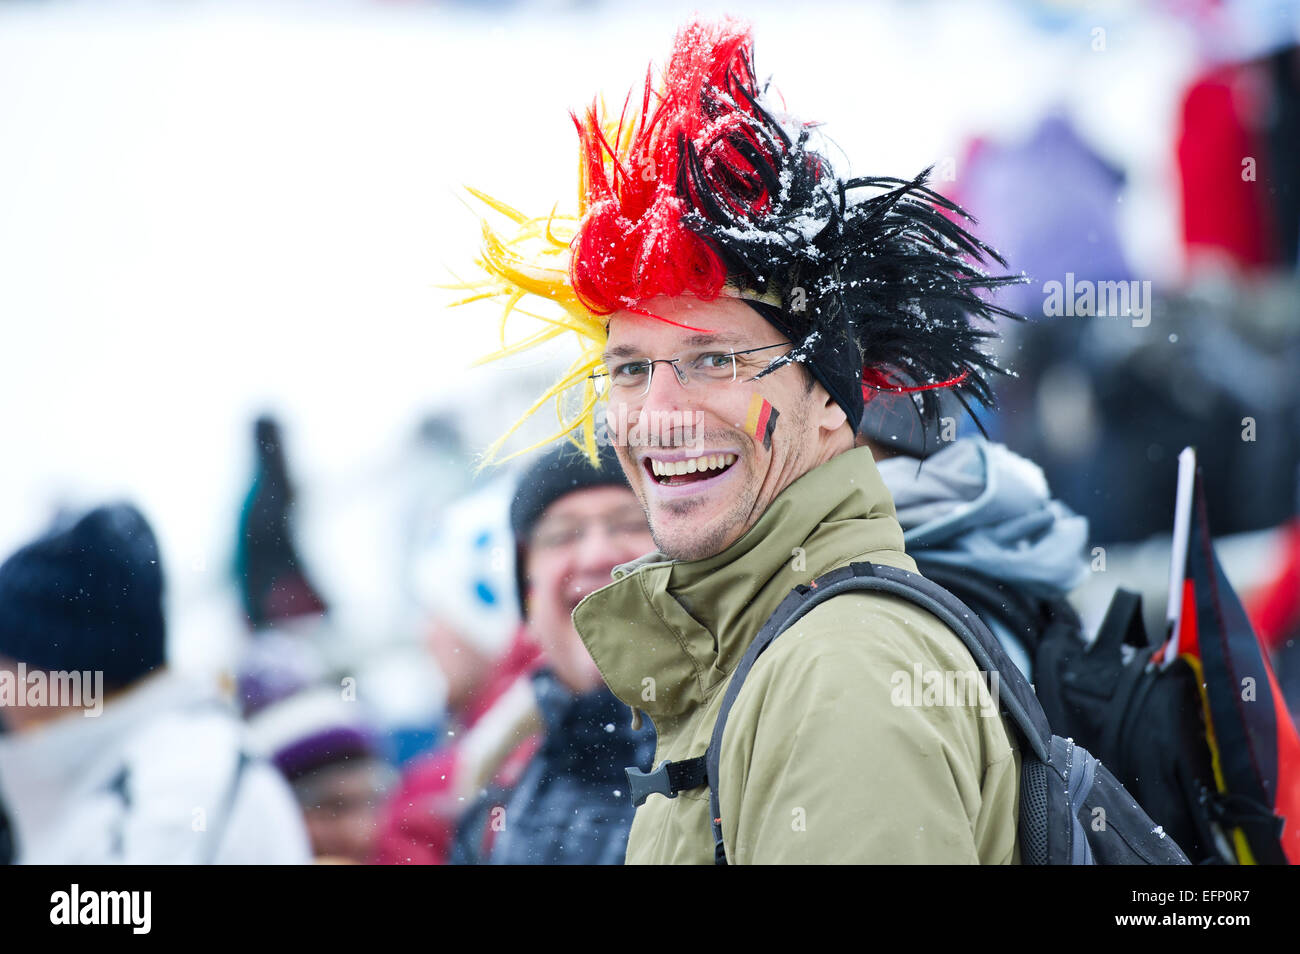 Titisee, Germany. 8th February, 2015. German supporter during the Large Hill Individual competition on day two of the FIS Ski Jumping World Cup on February 8, 2015 in Titisee, Germany. Credit:  Miroslav Dakov/Alamy Live News Stock Photo